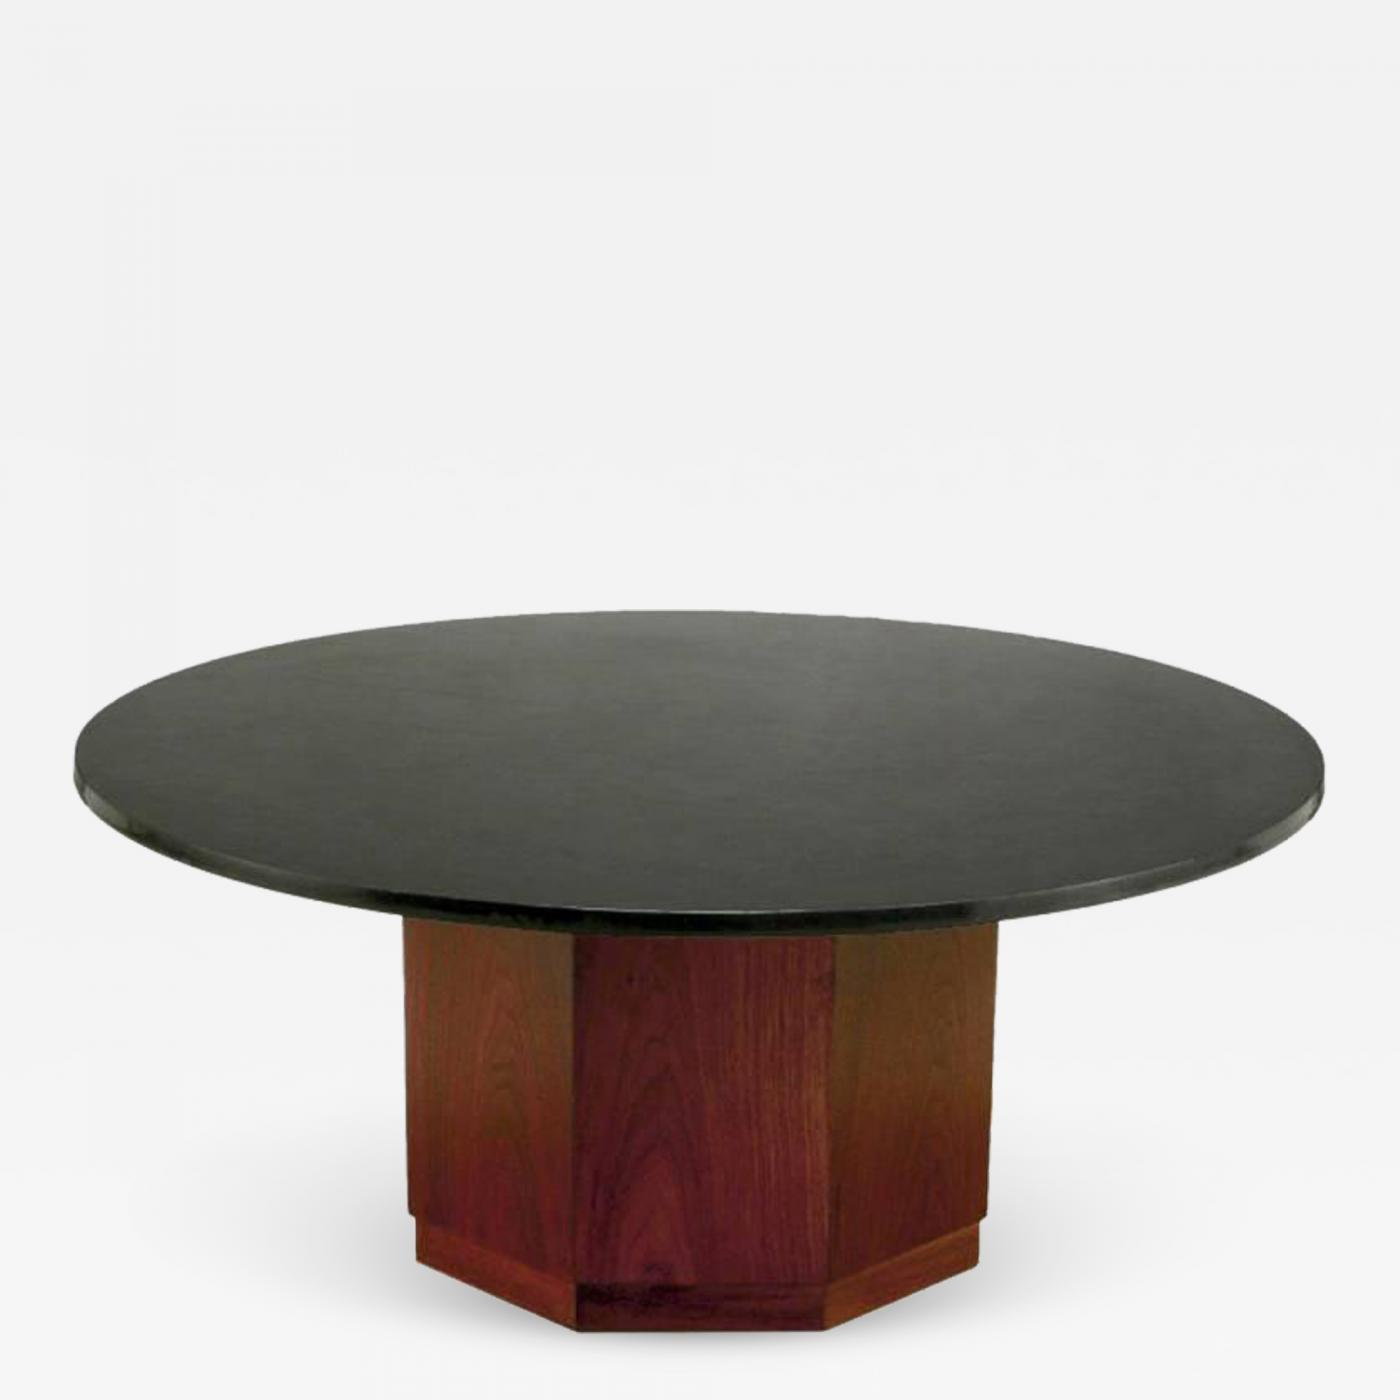 Fred kemp fred kemp walnut and slate coffee table listings furniture tables coffee tables geotapseo Image collections